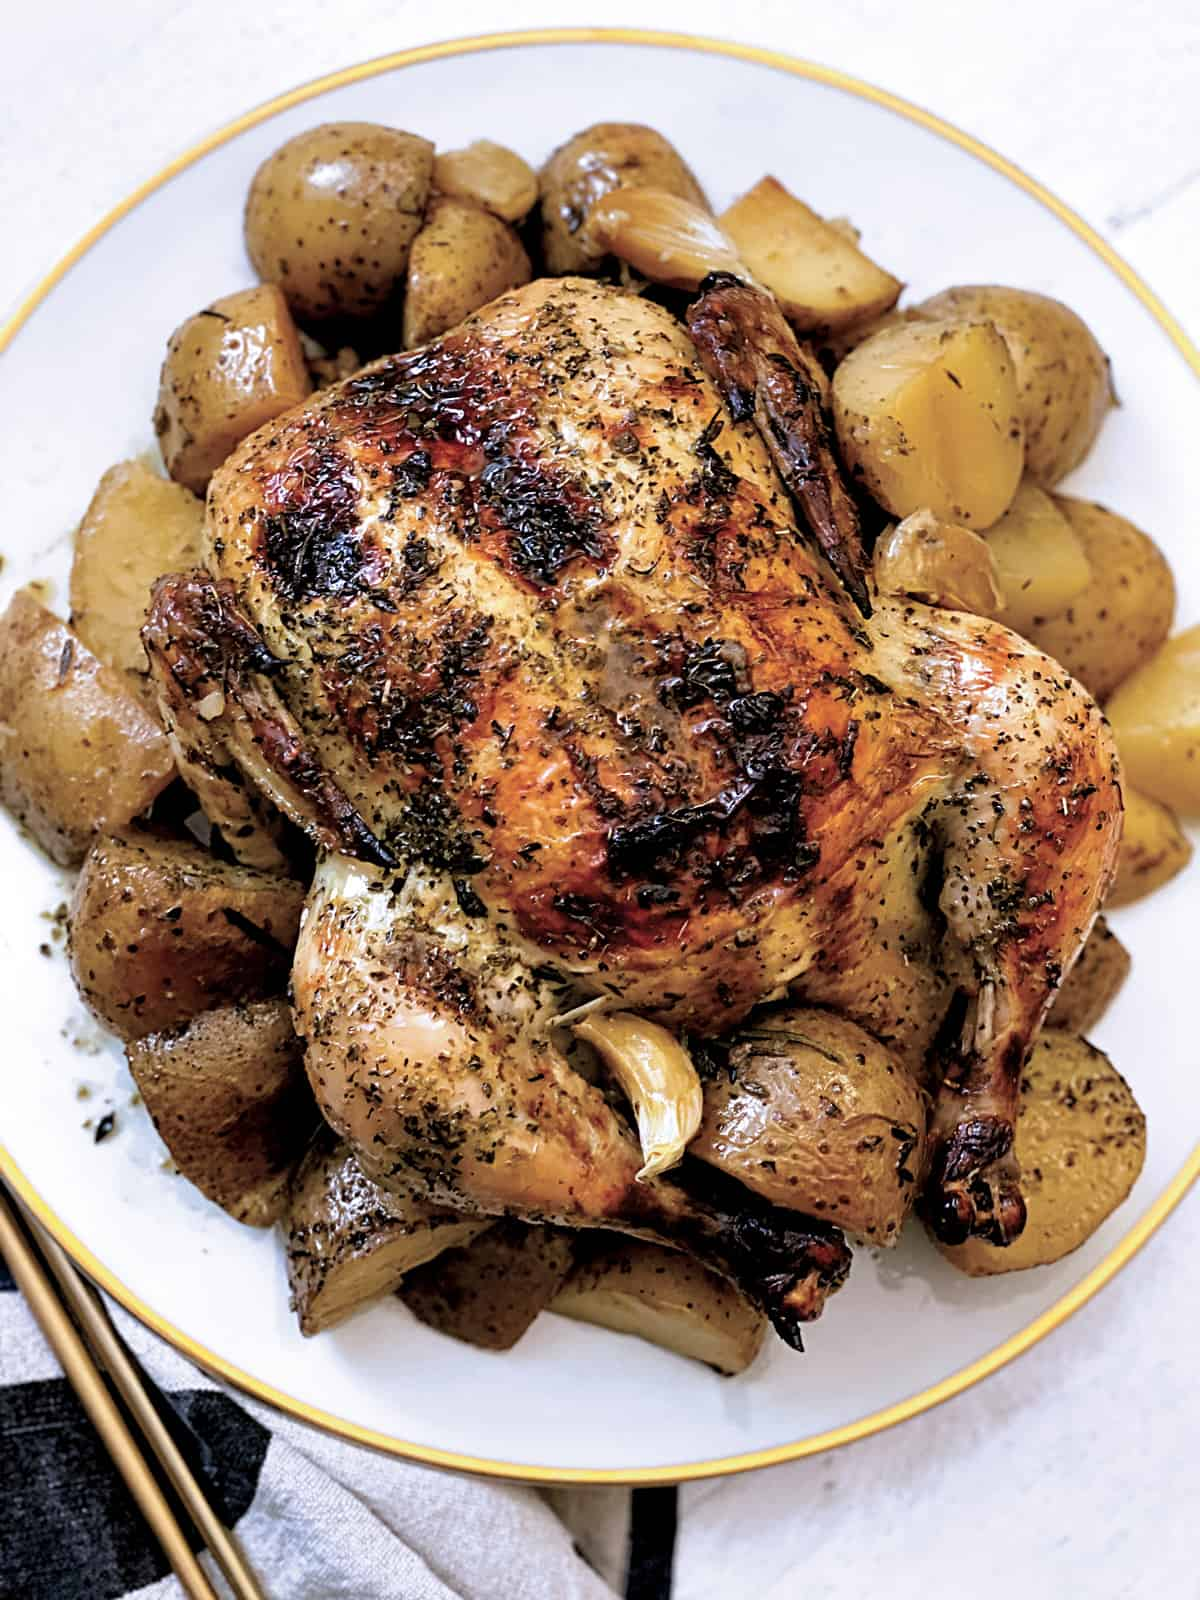 A roast whole chicken with potatoes on a platter with a cloth napkin and serving utensils.